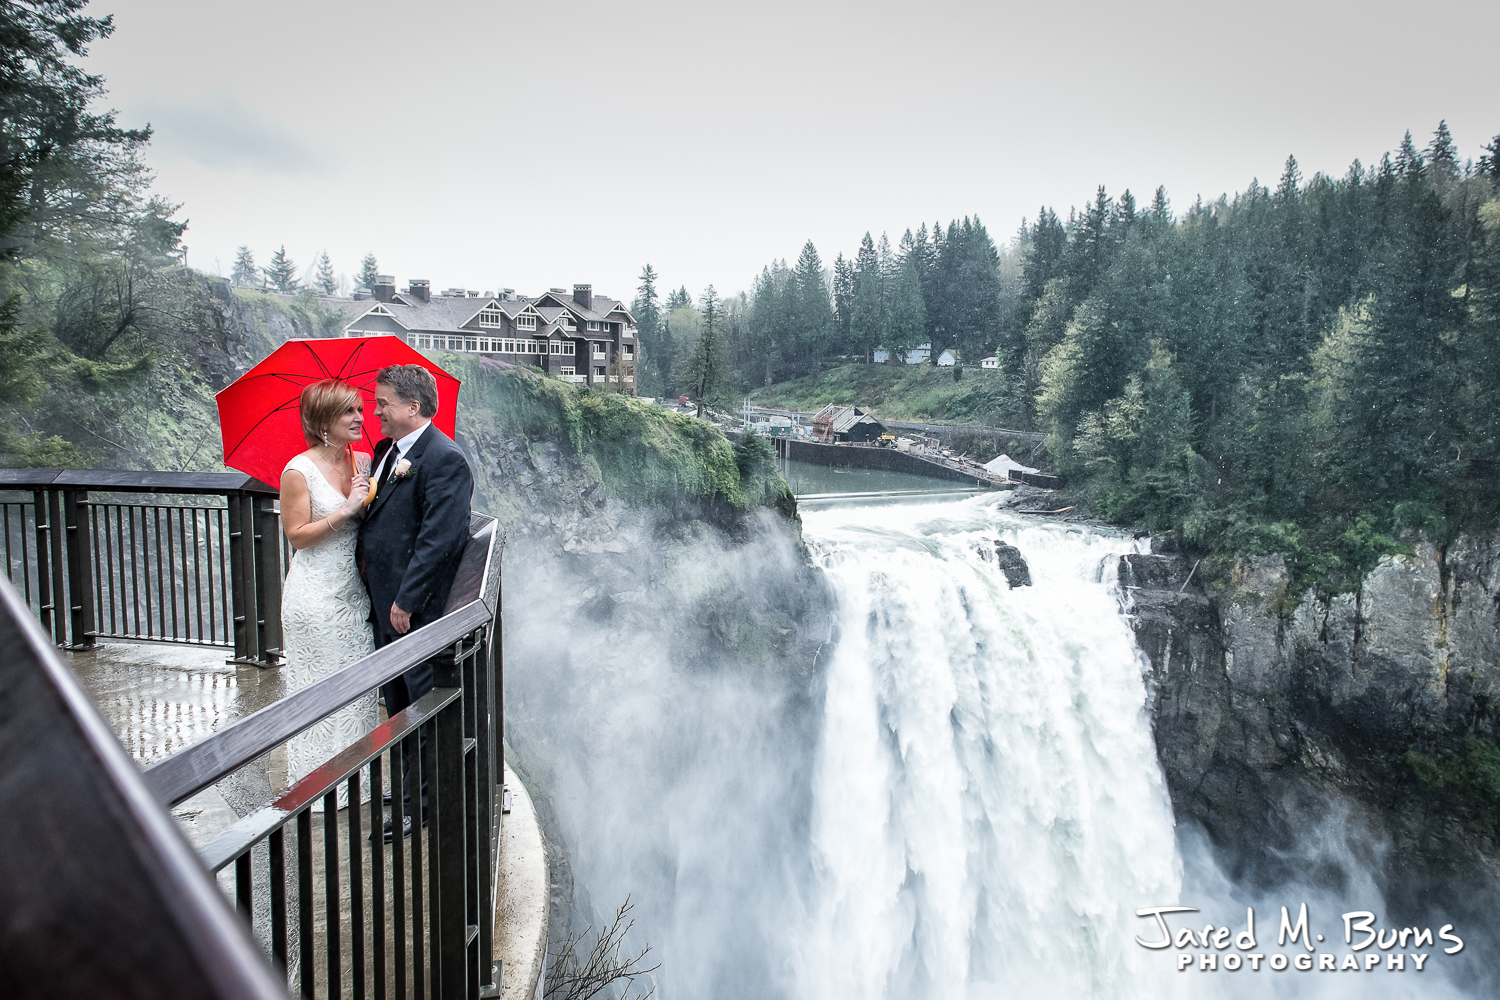 Seattle Wedding Photographer - Bride and Groom at Snoqualmie Falls Salish Lodge, Jared M. Burns